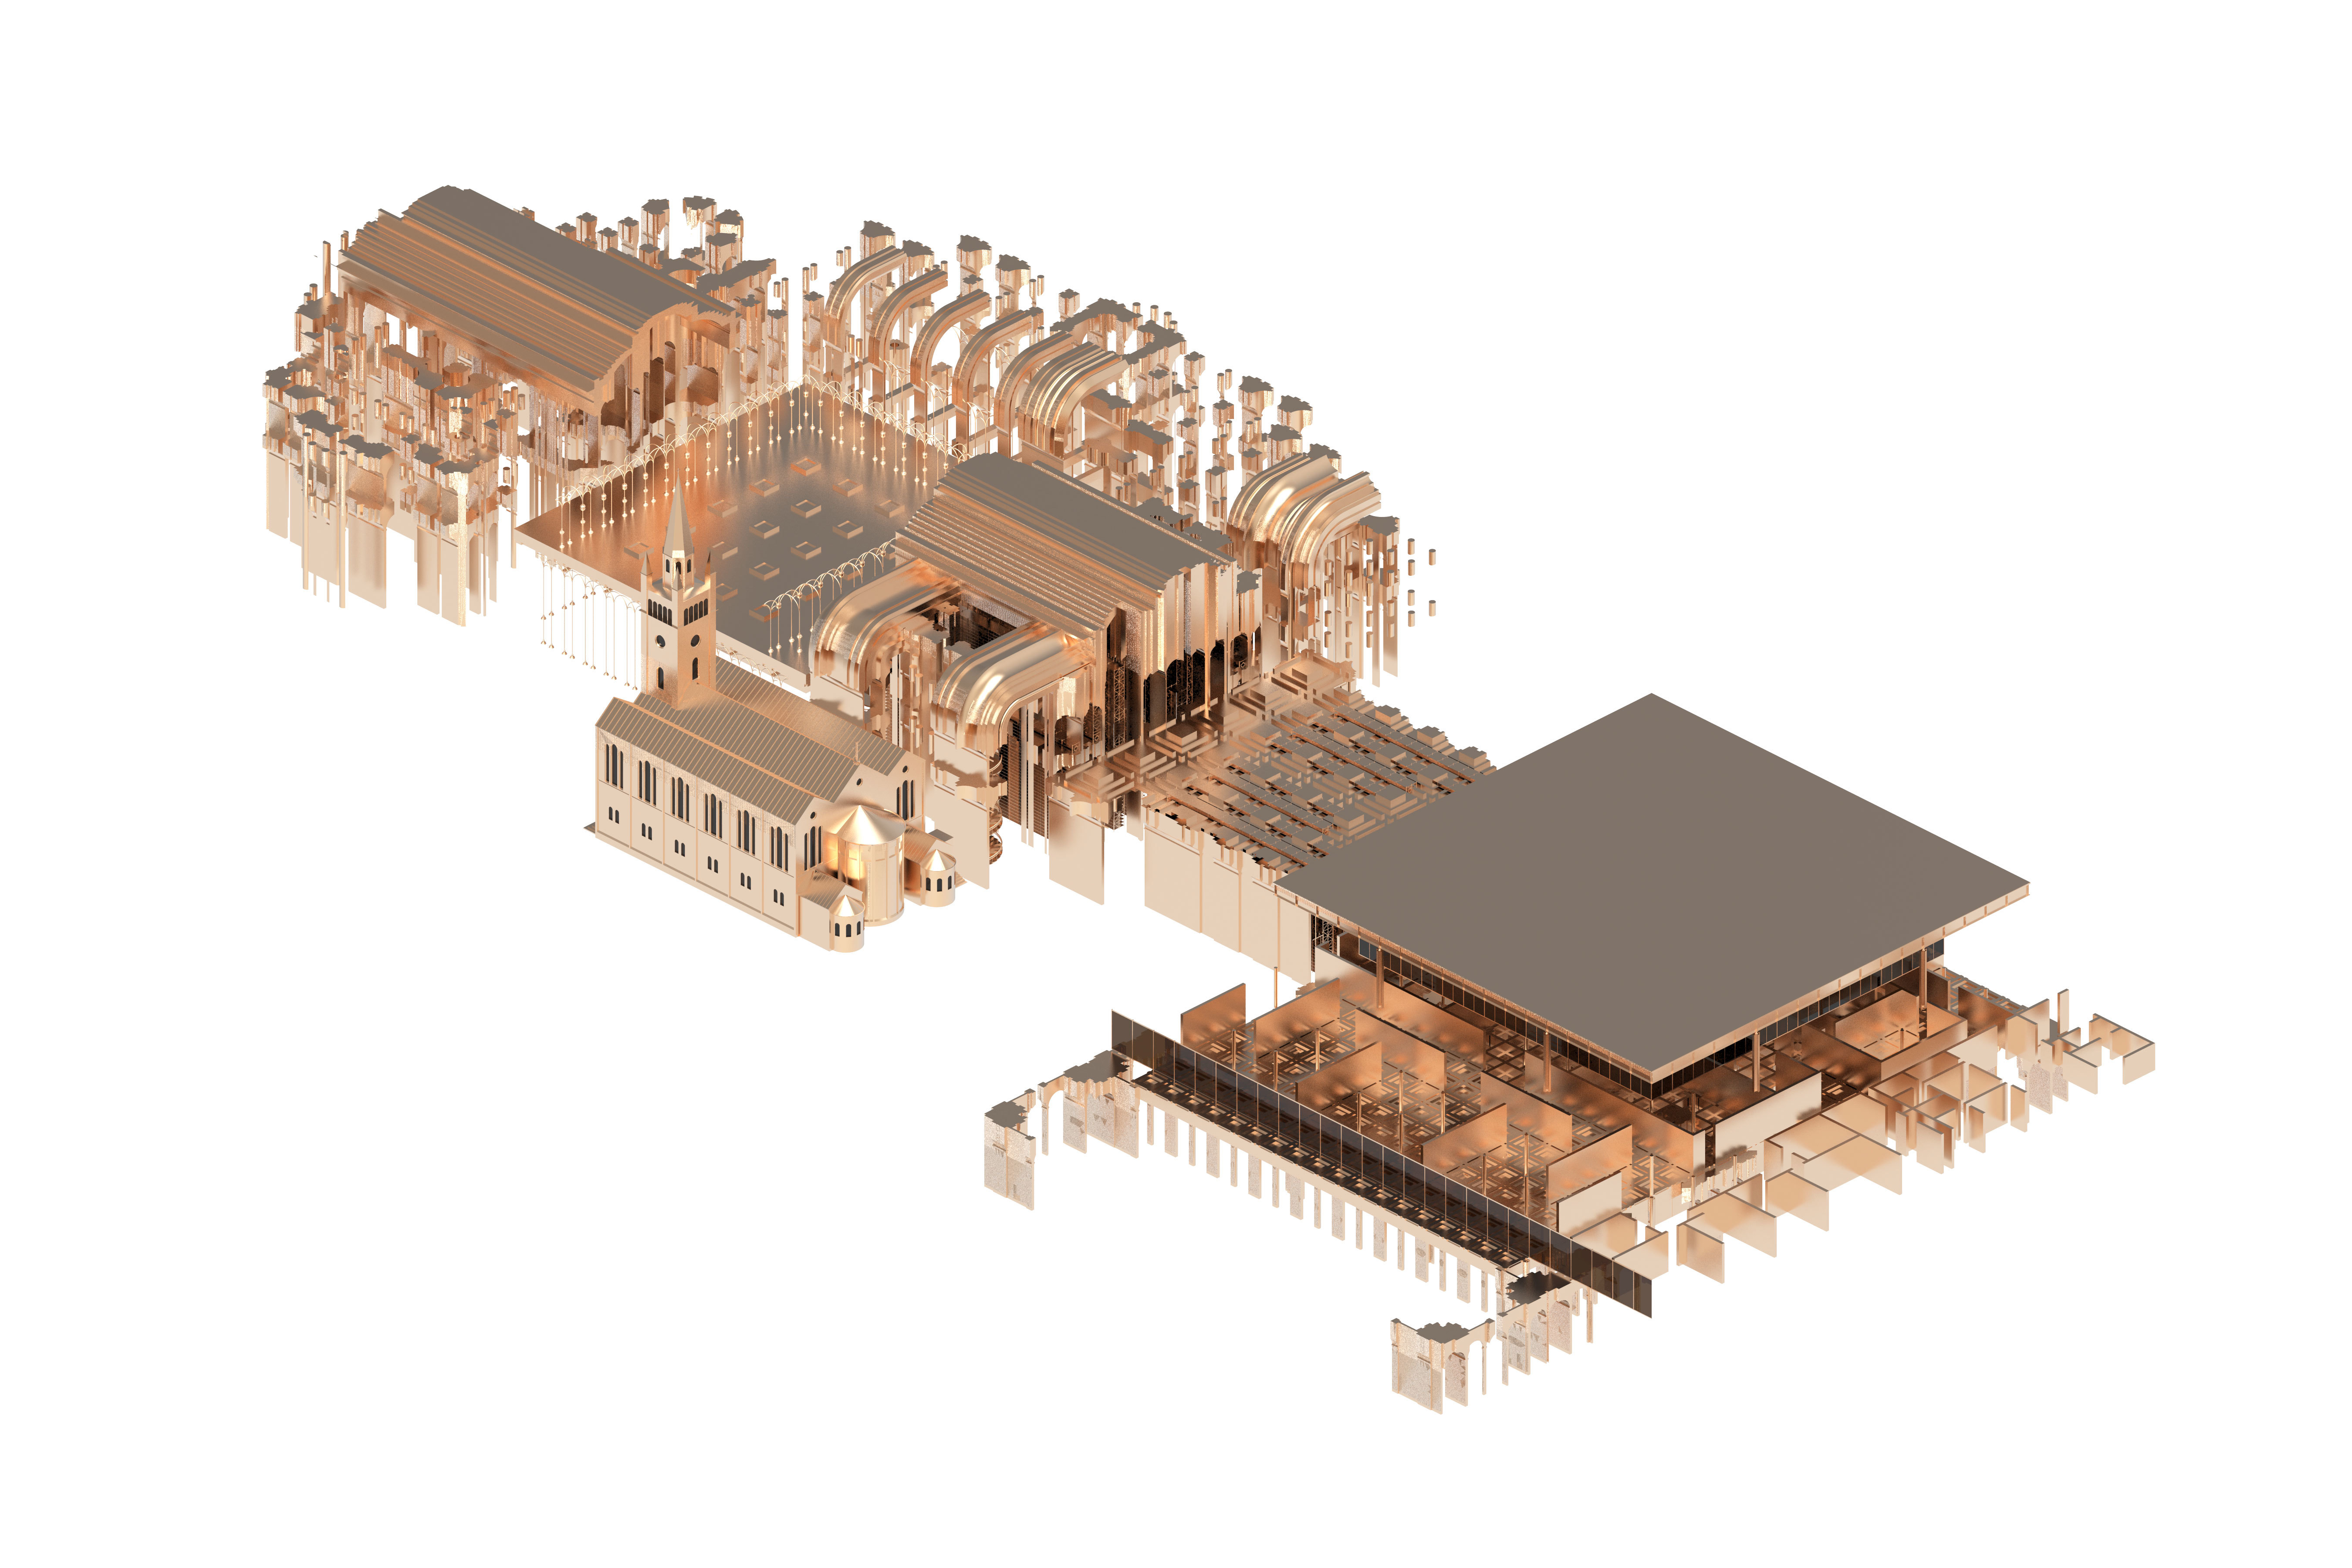 isometric metallic site plan by thesis student